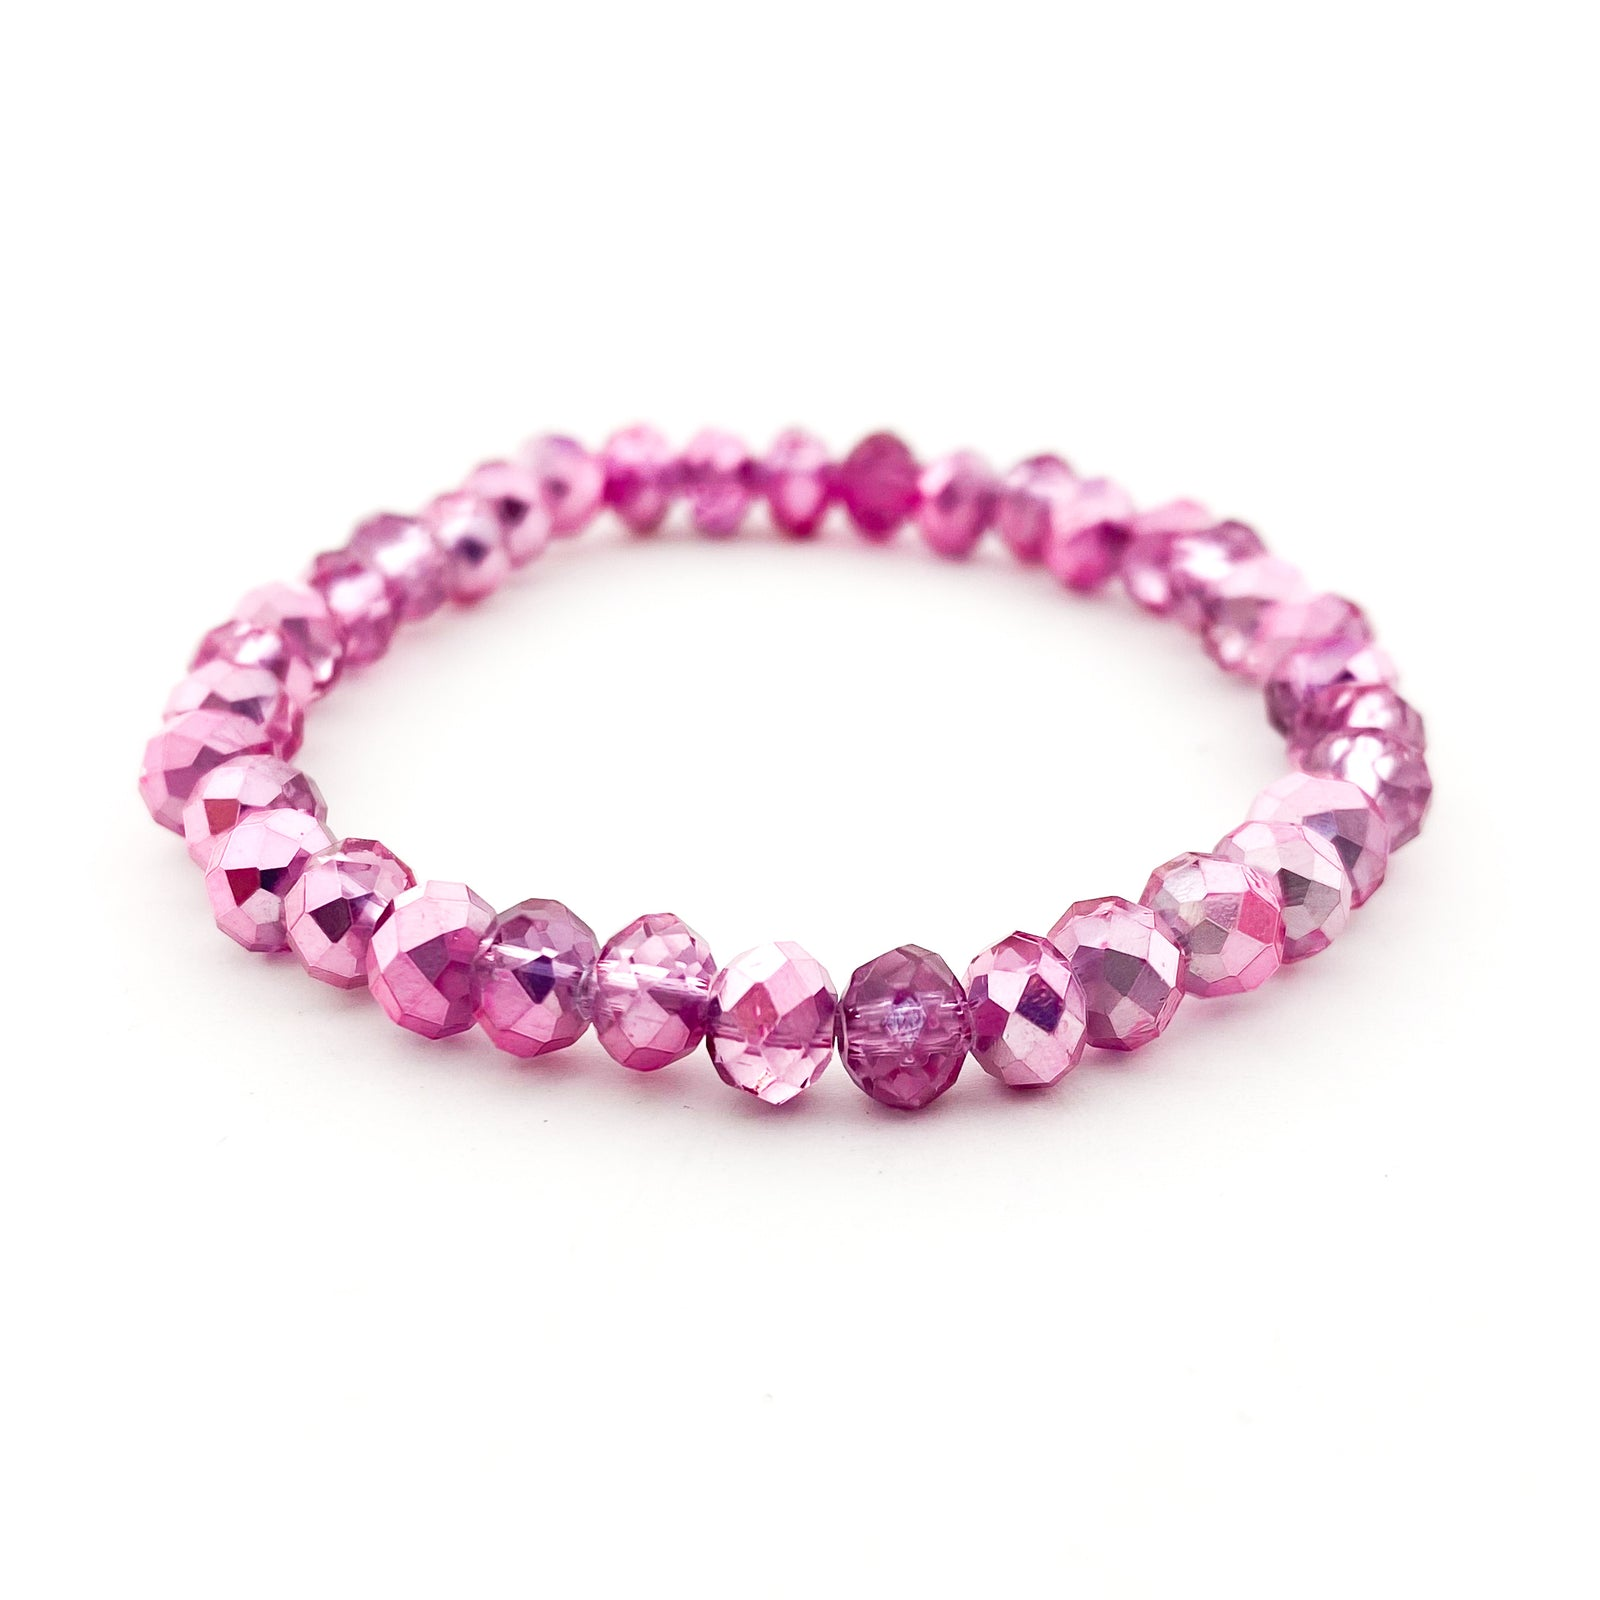 KIDS BRIGHT COLORFUL SPARKLE CRYSTAL BRACELETS | 6MM | STYLE OPTIONS